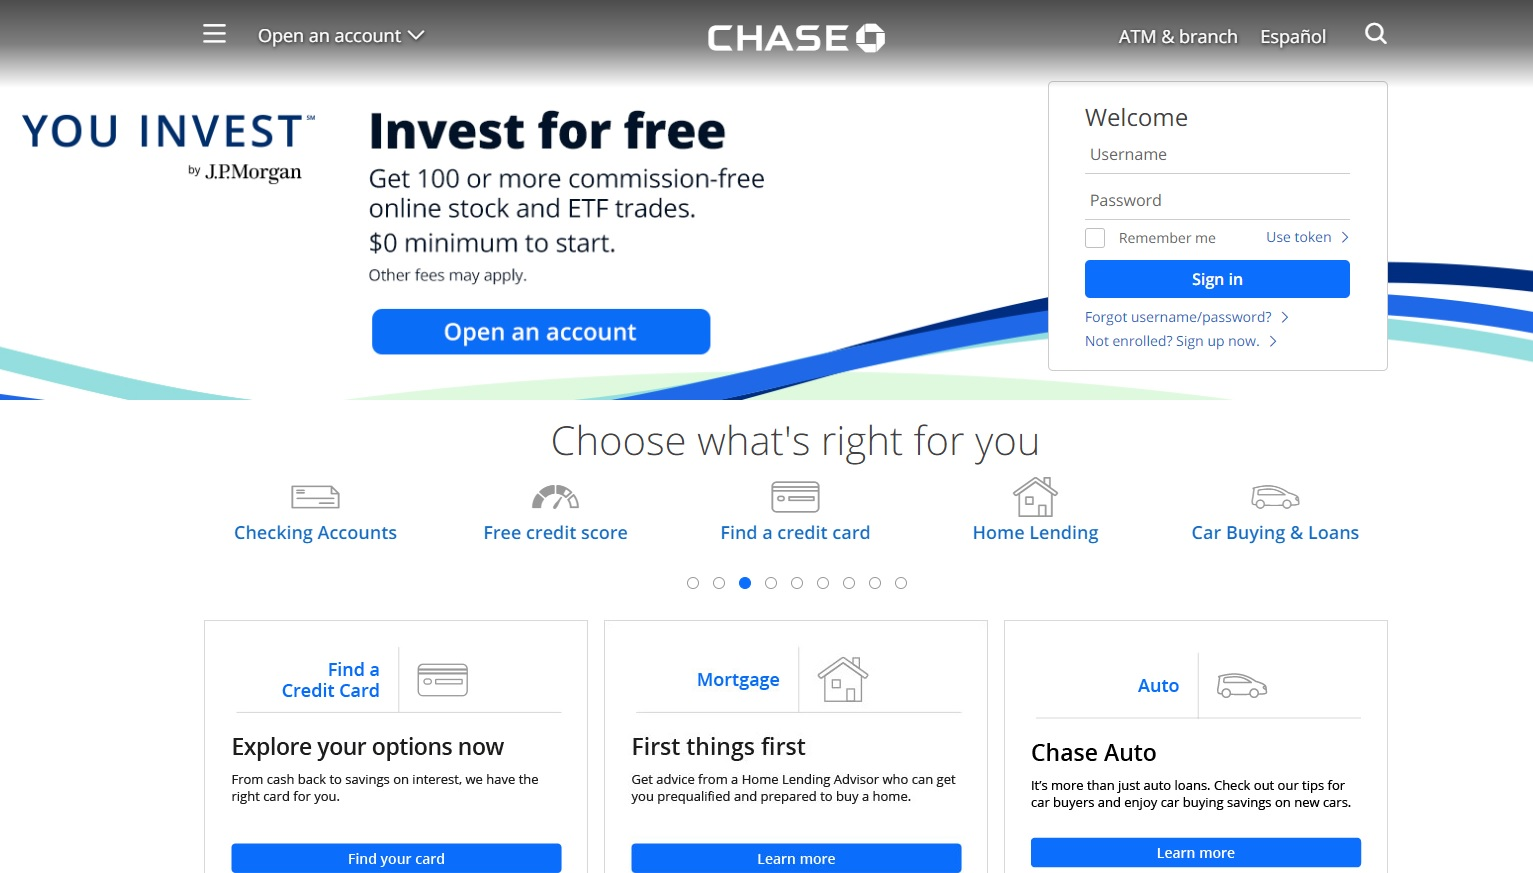 Chase Bank Online and Mobile Banking